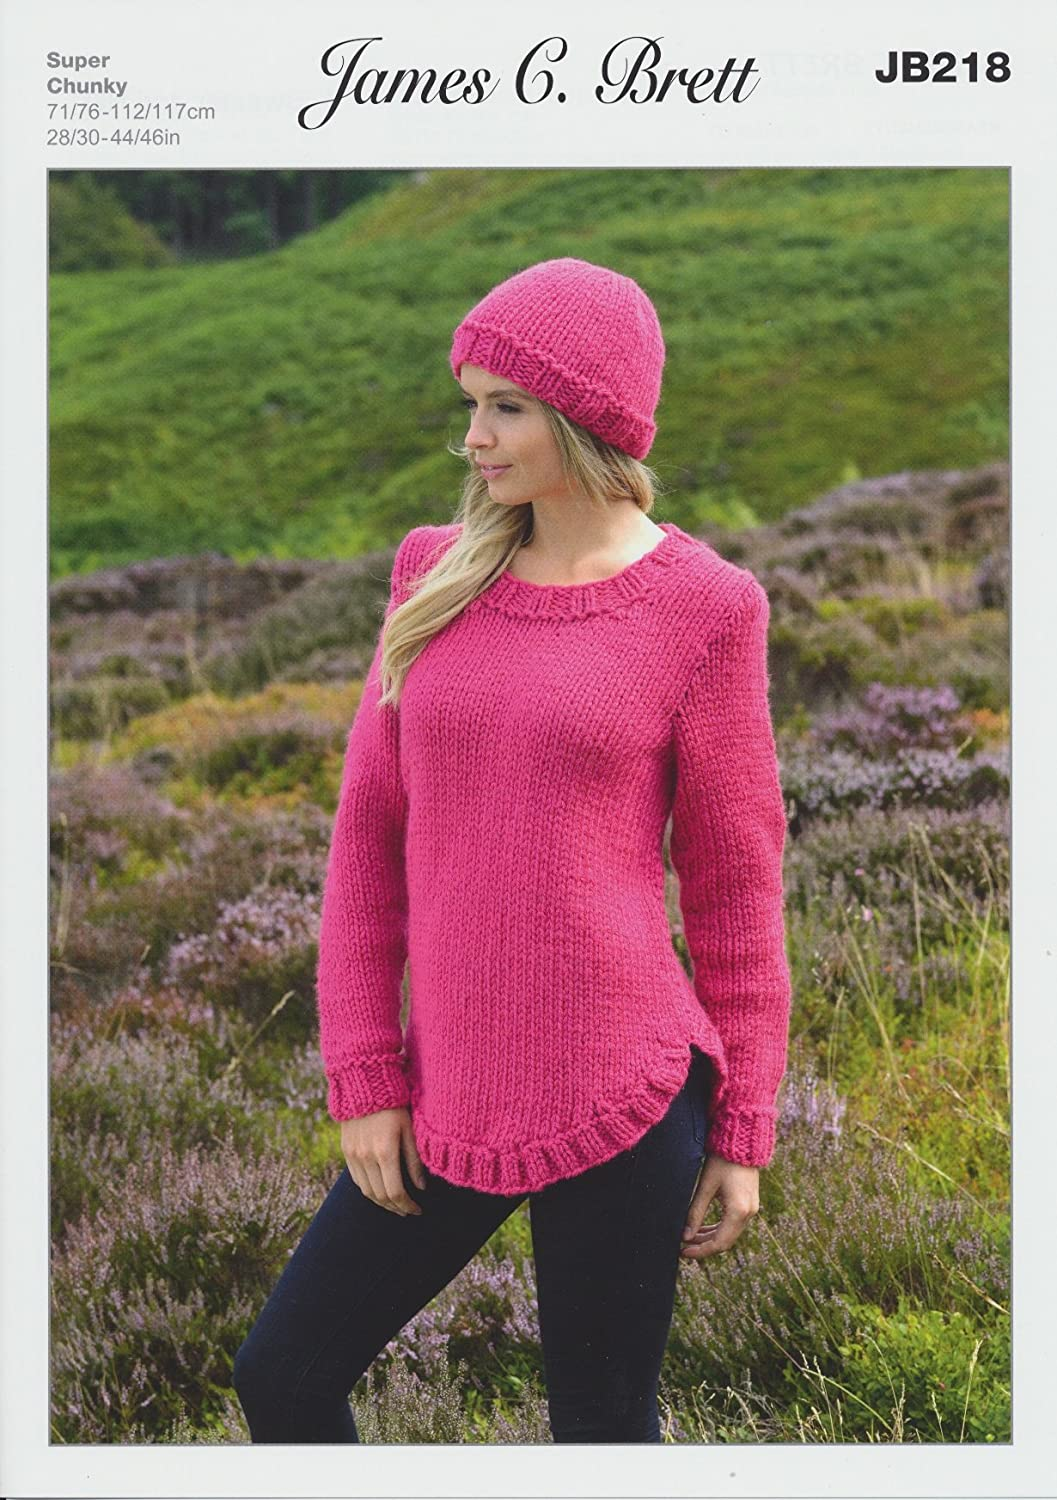 James Brett  Super Chunky Knitting Pattern Ladies Sweater /& Hat With Ribbed Detail